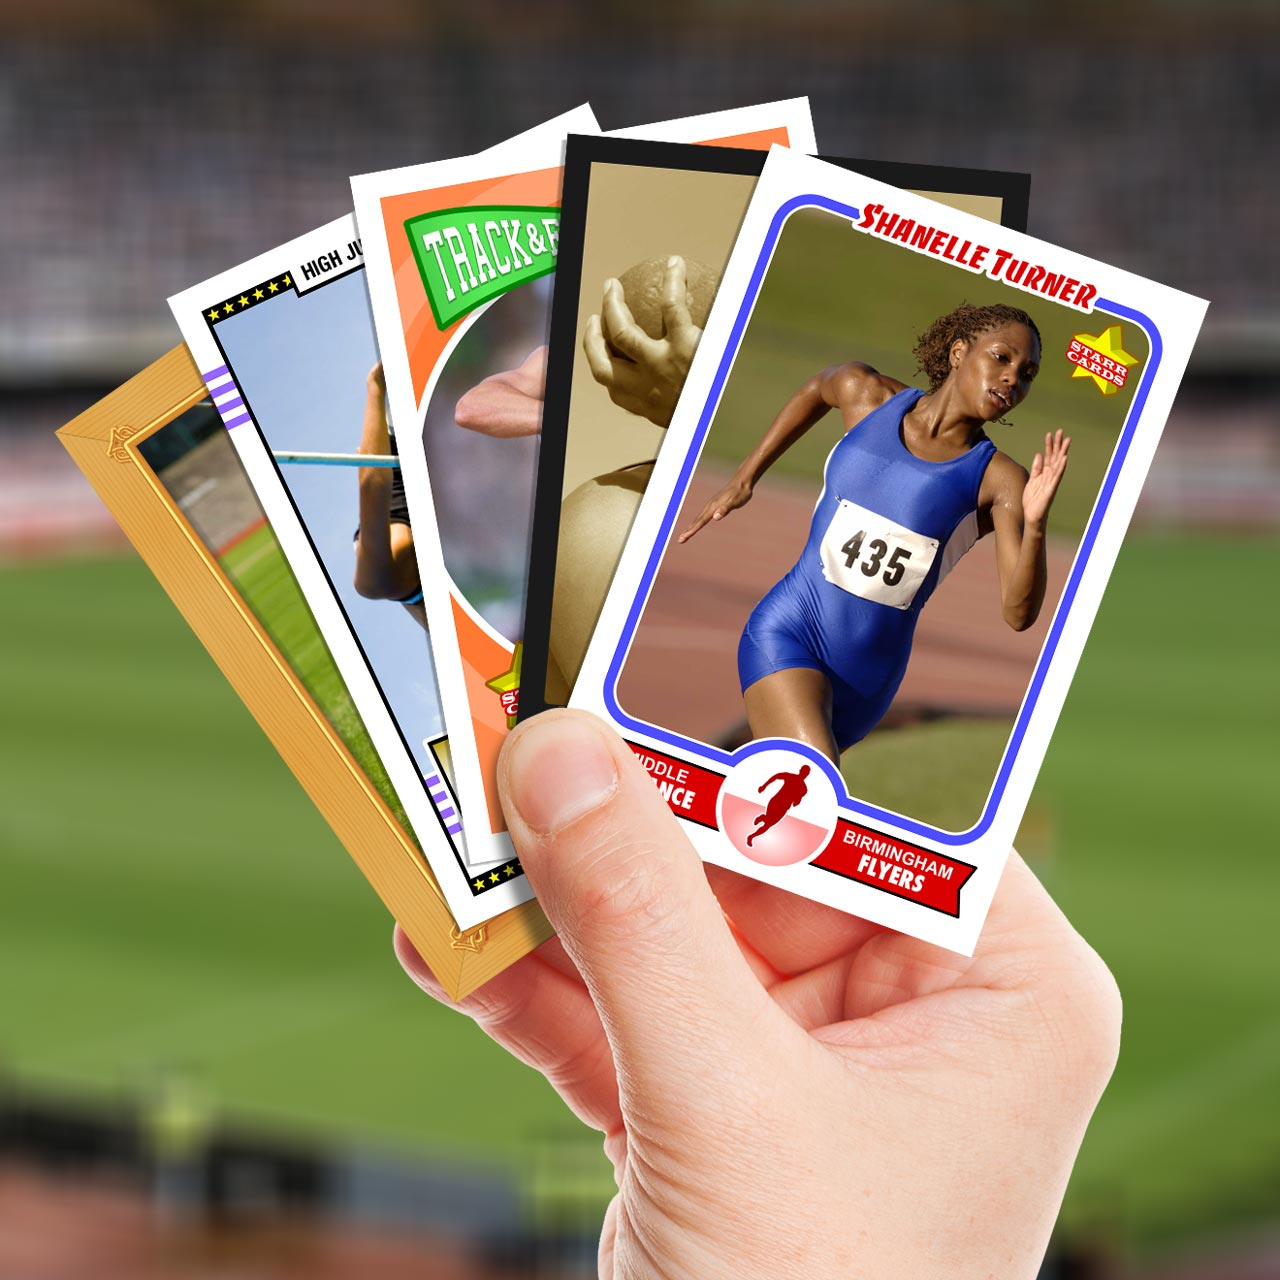 Make your own track and field card with Starr Cards.